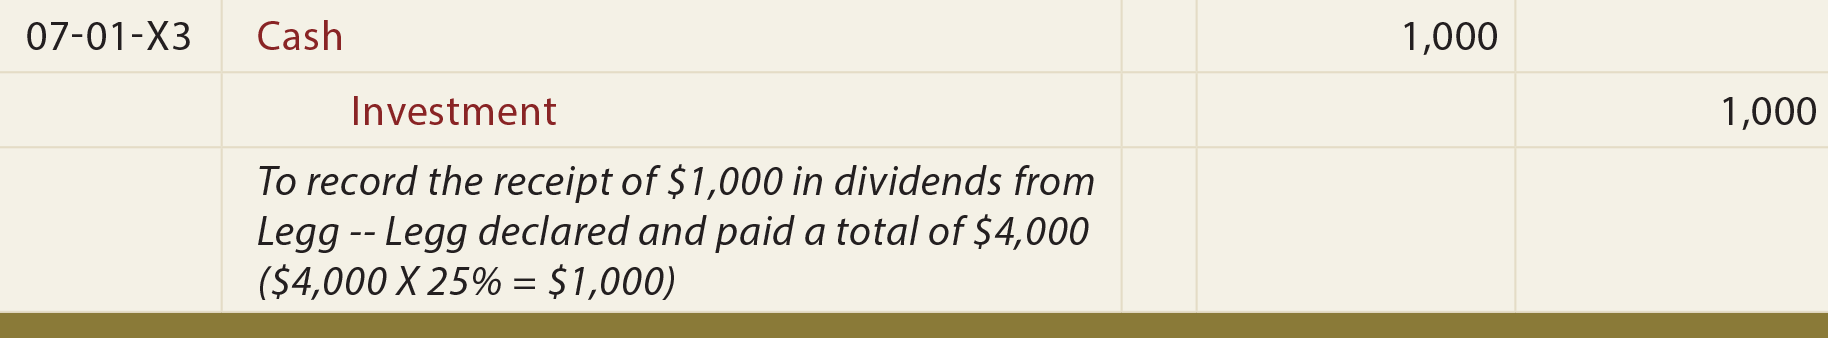 Investments - Equity Method General Journal Entry - To record the receipt of dividends